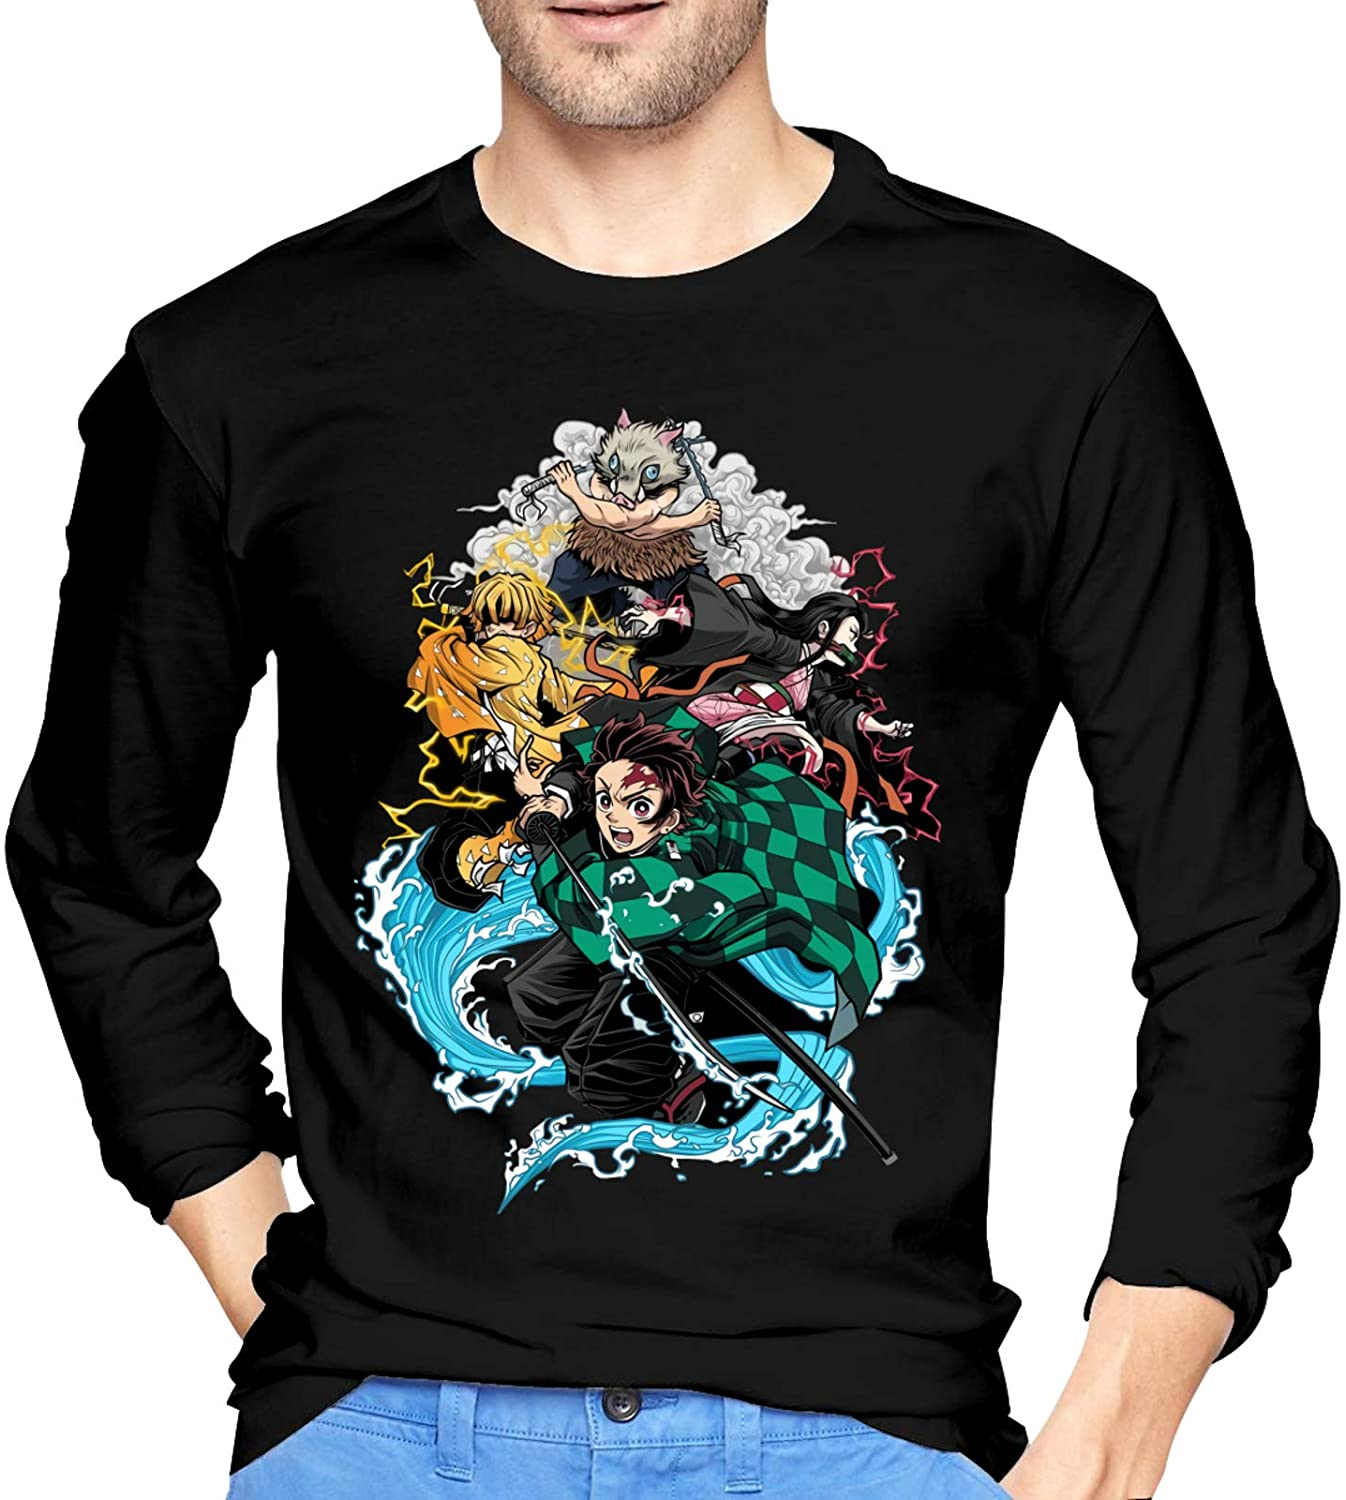 Demon Slayer Cartoon Men's Adult Cotton Long Sleeve T-Shirt Graphic Fashion Tops Casual Crewneck Tee